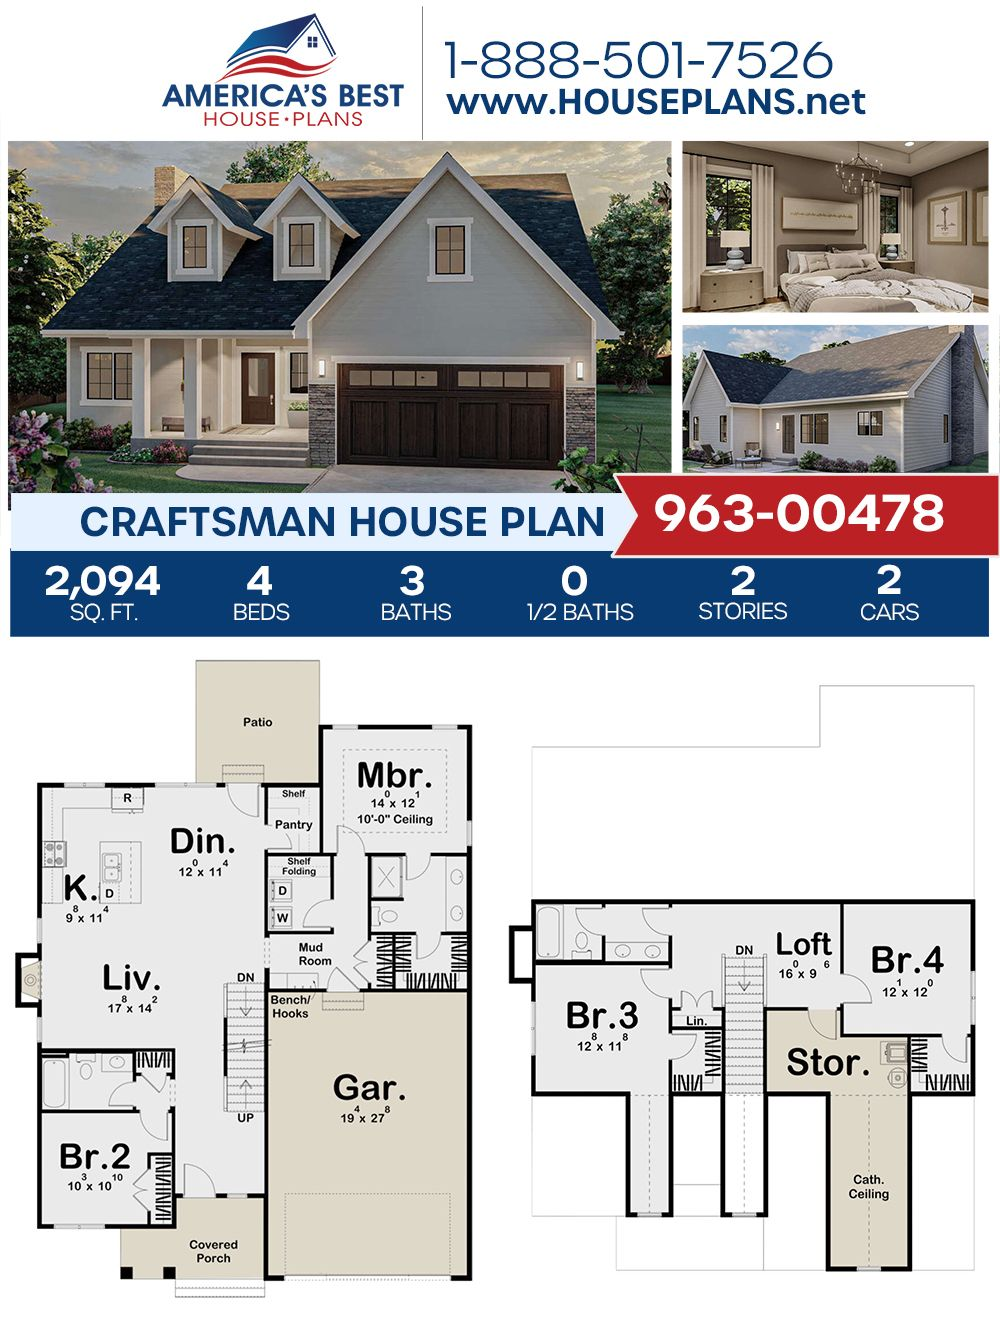 House Plan 963 00478 Craftsman Plan 2 094 Square Feet 4 Bedrooms 3 Bathrooms In 2020 House Plans Craftsman House Plans Craftsman House